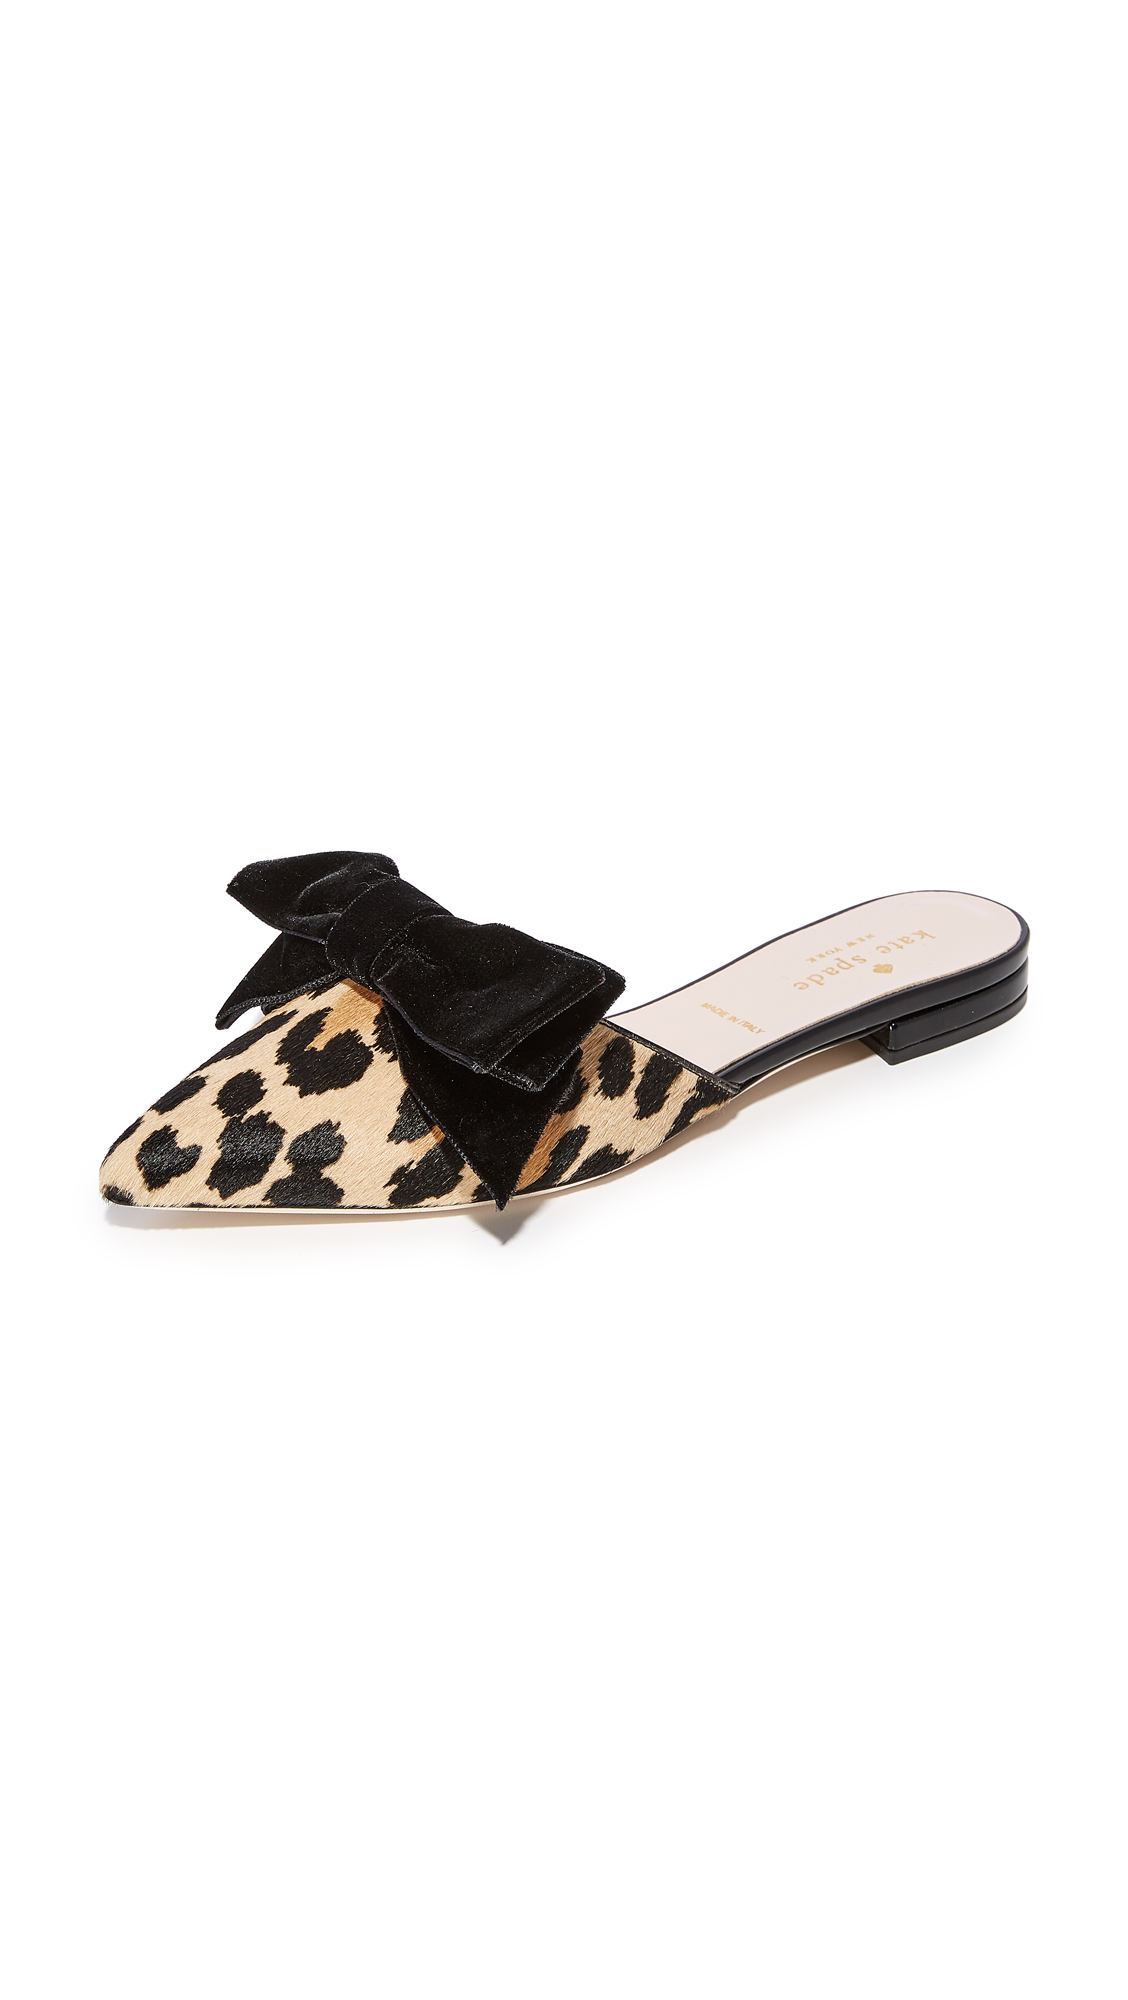 Kate Spade New York Belgrove Bow Mules - Amaretto/Black Leopard